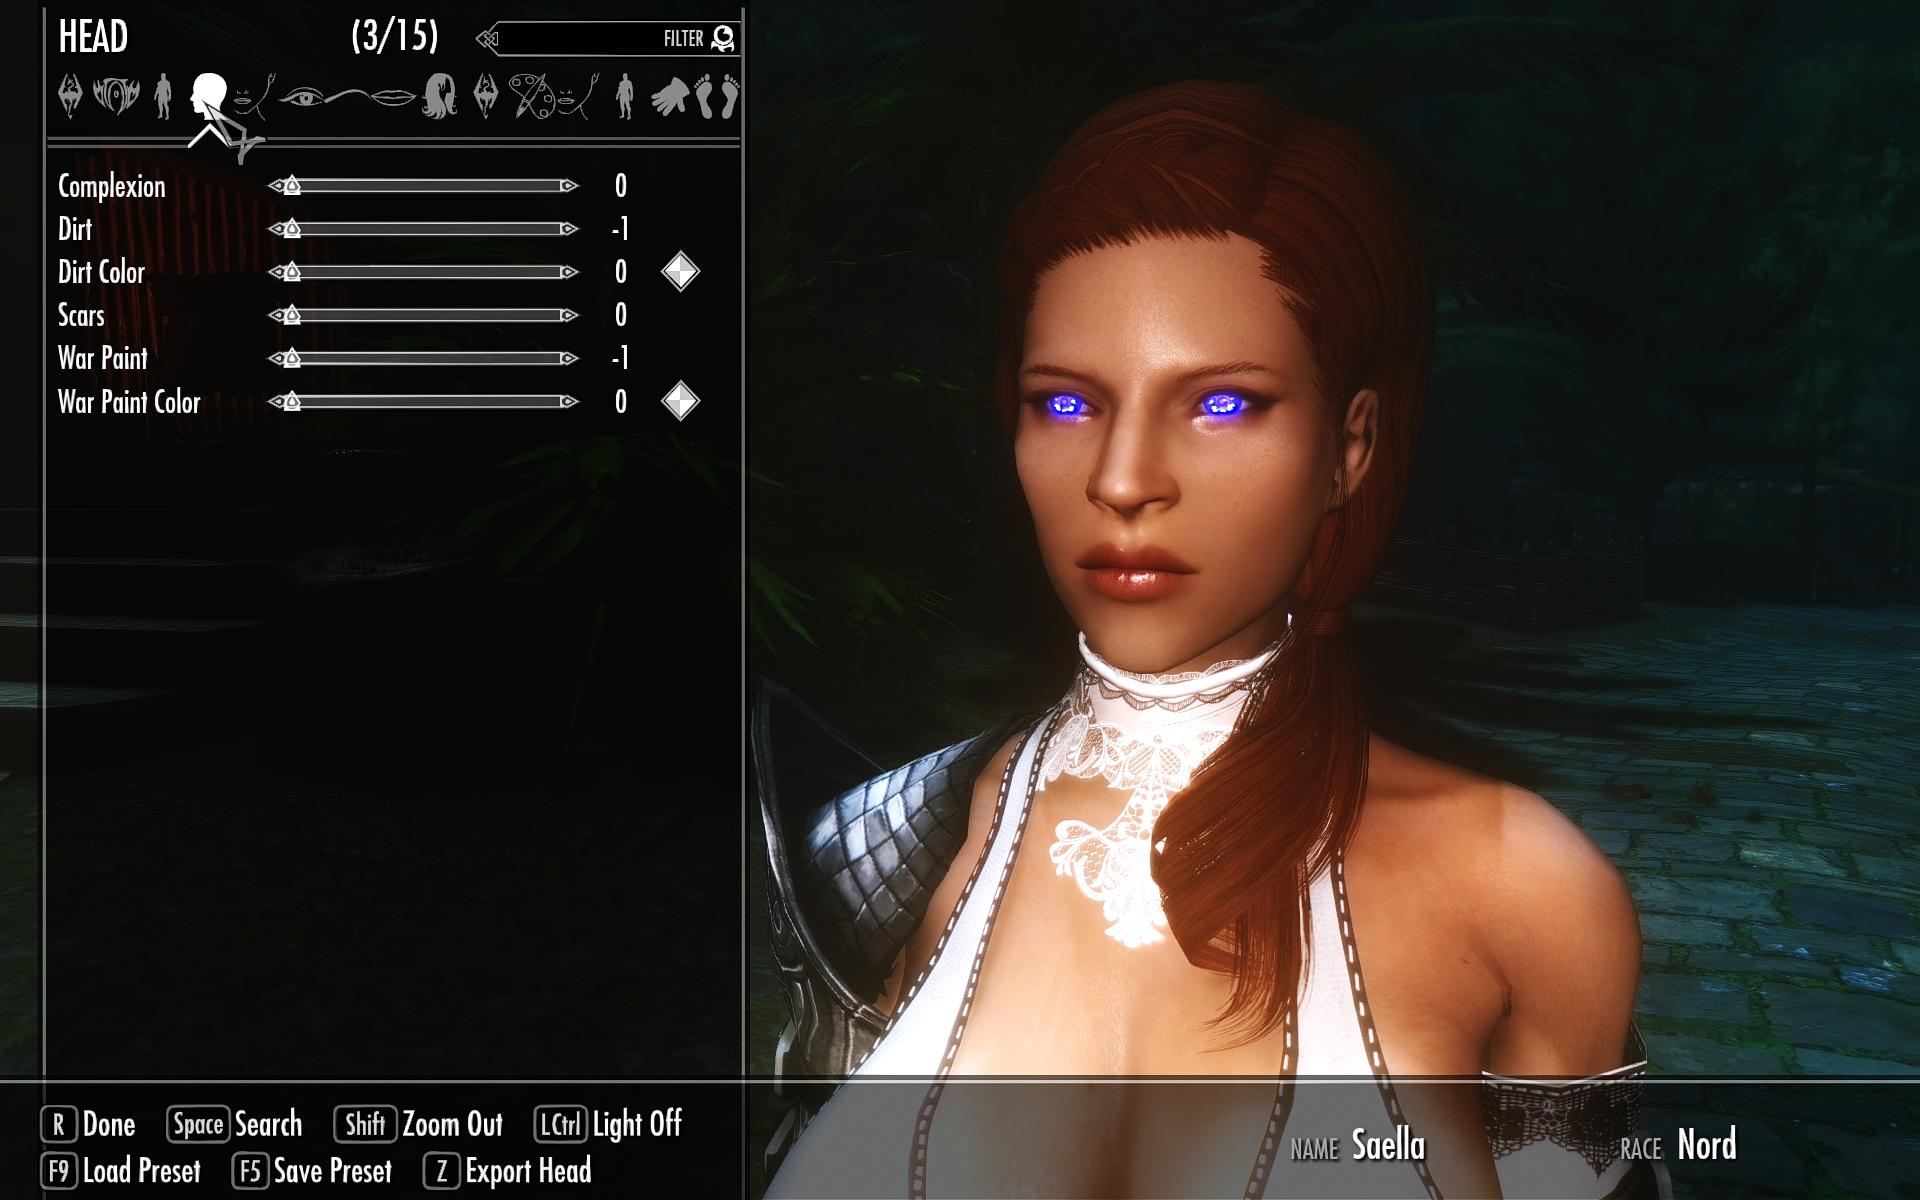 Sexy skyrim characters